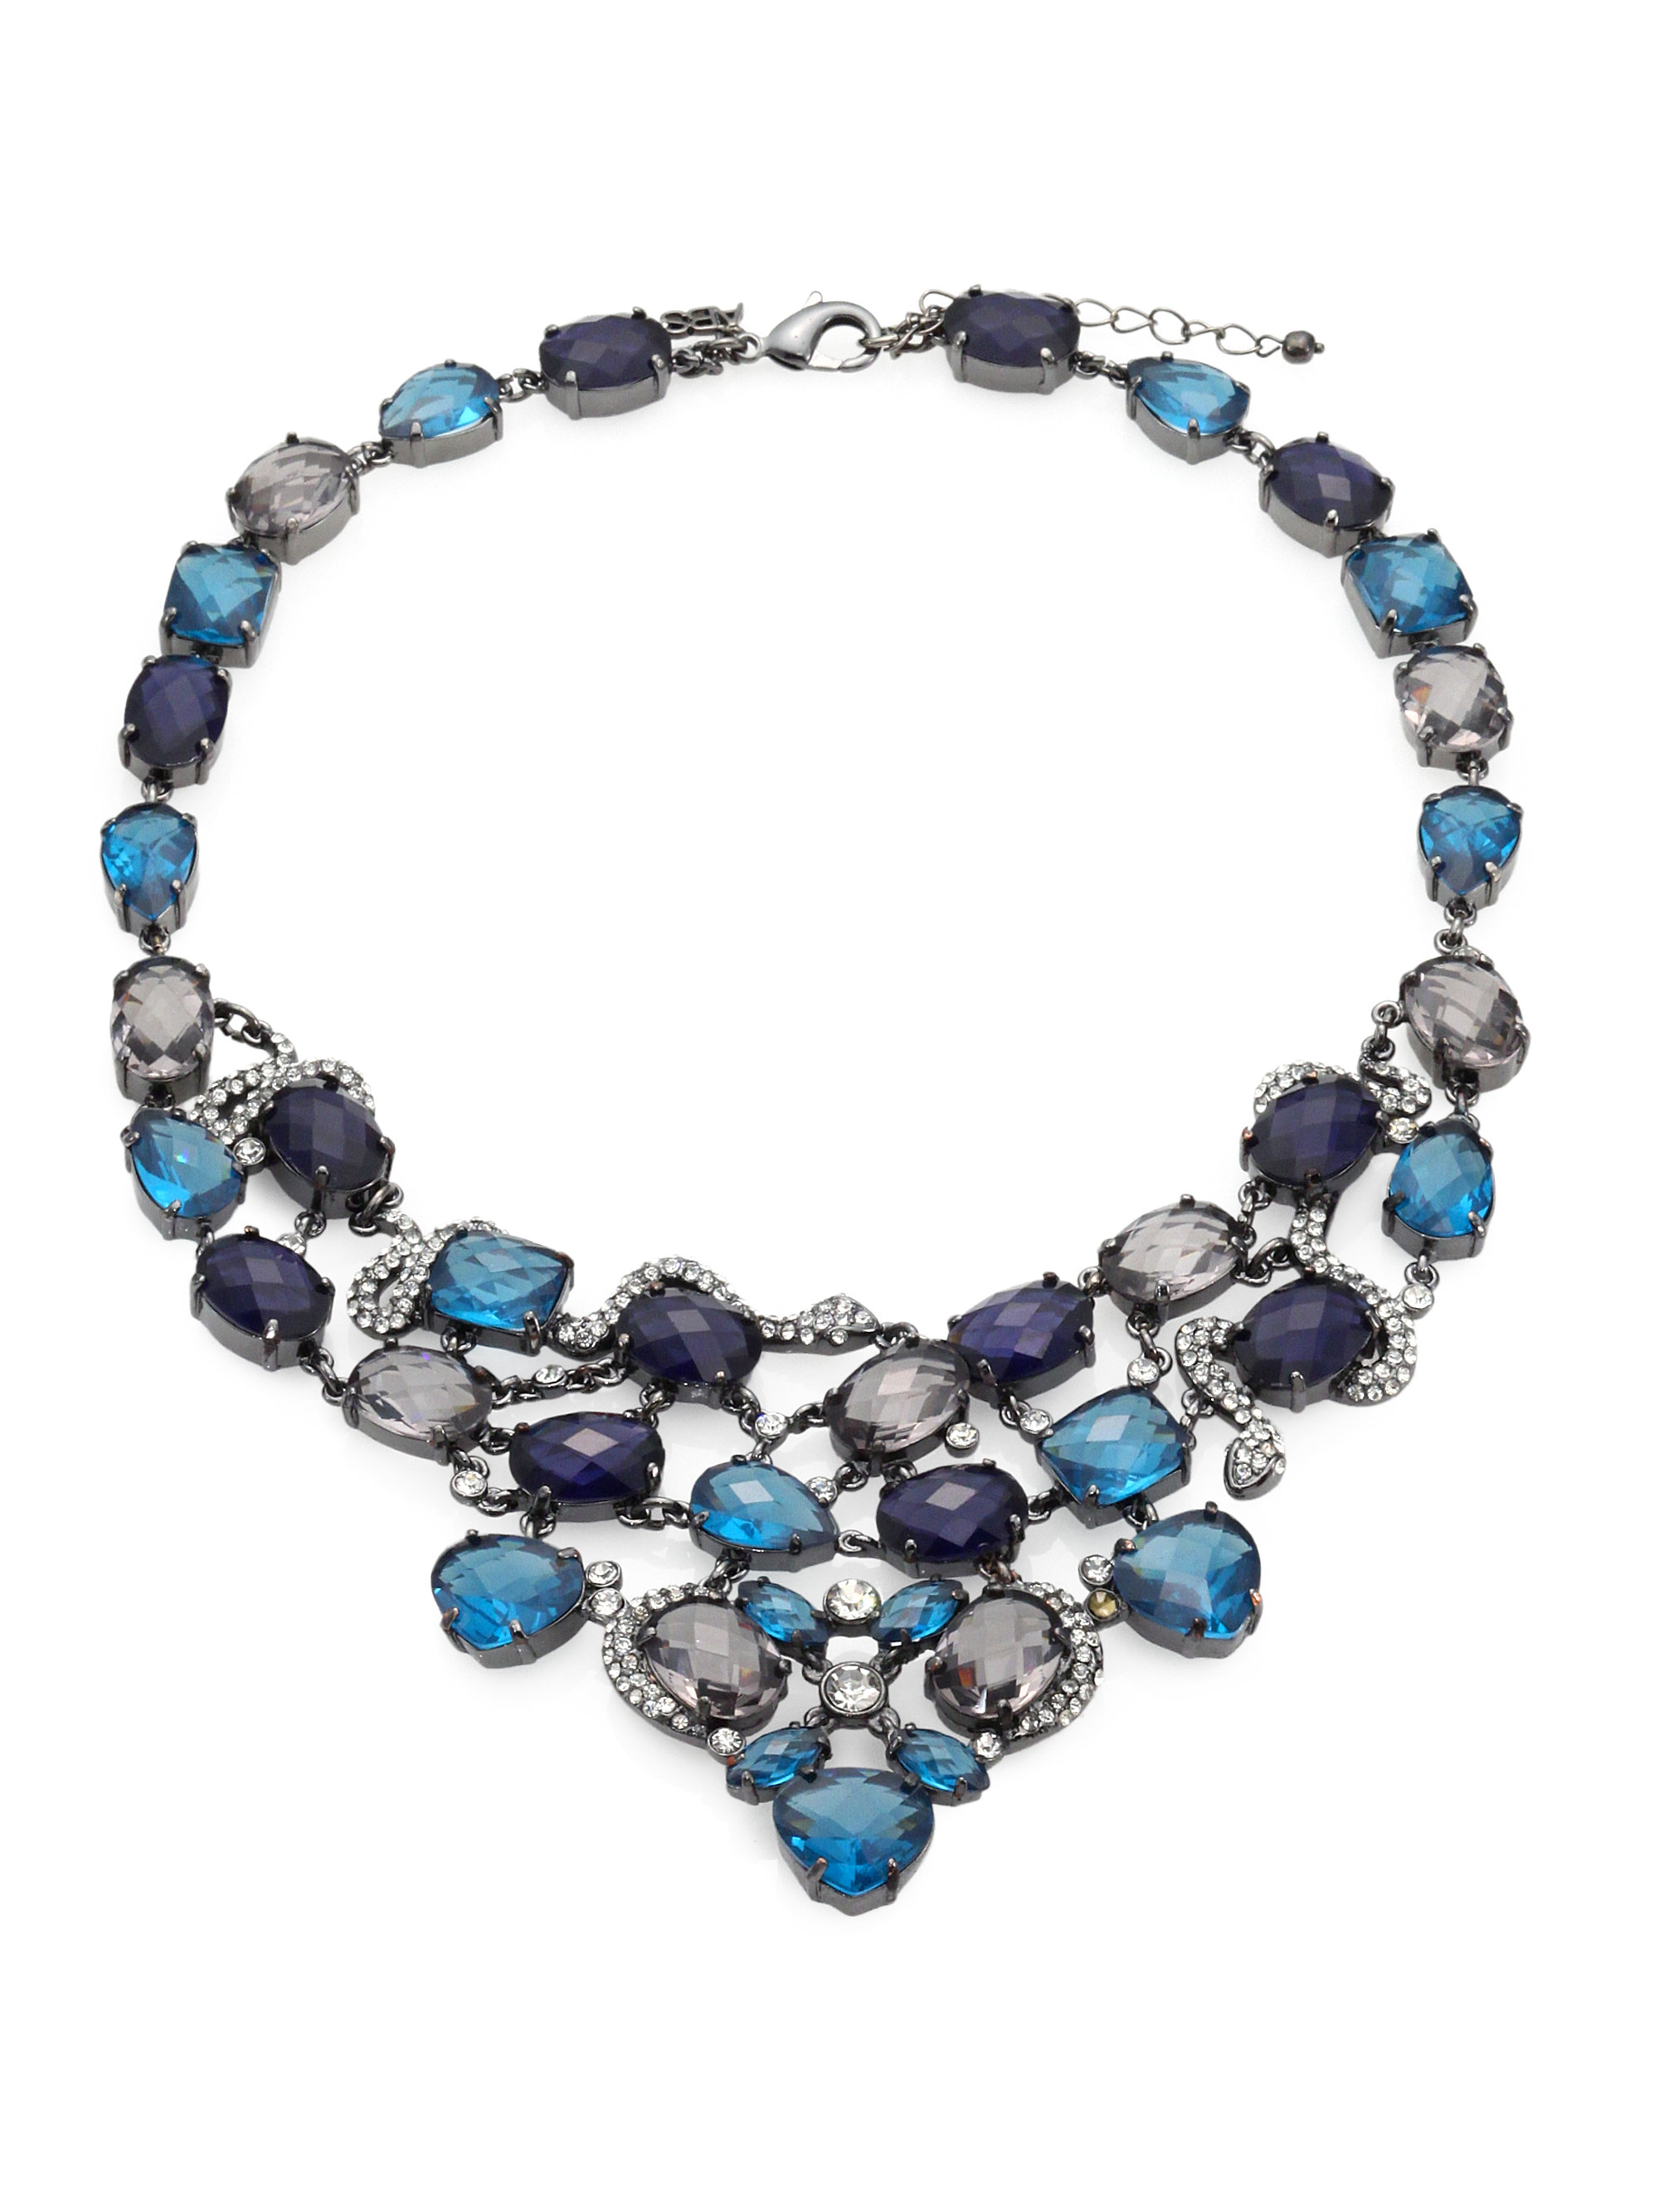 allen jewelry lyst abs by allen schwartz bib necklace in blue 2641